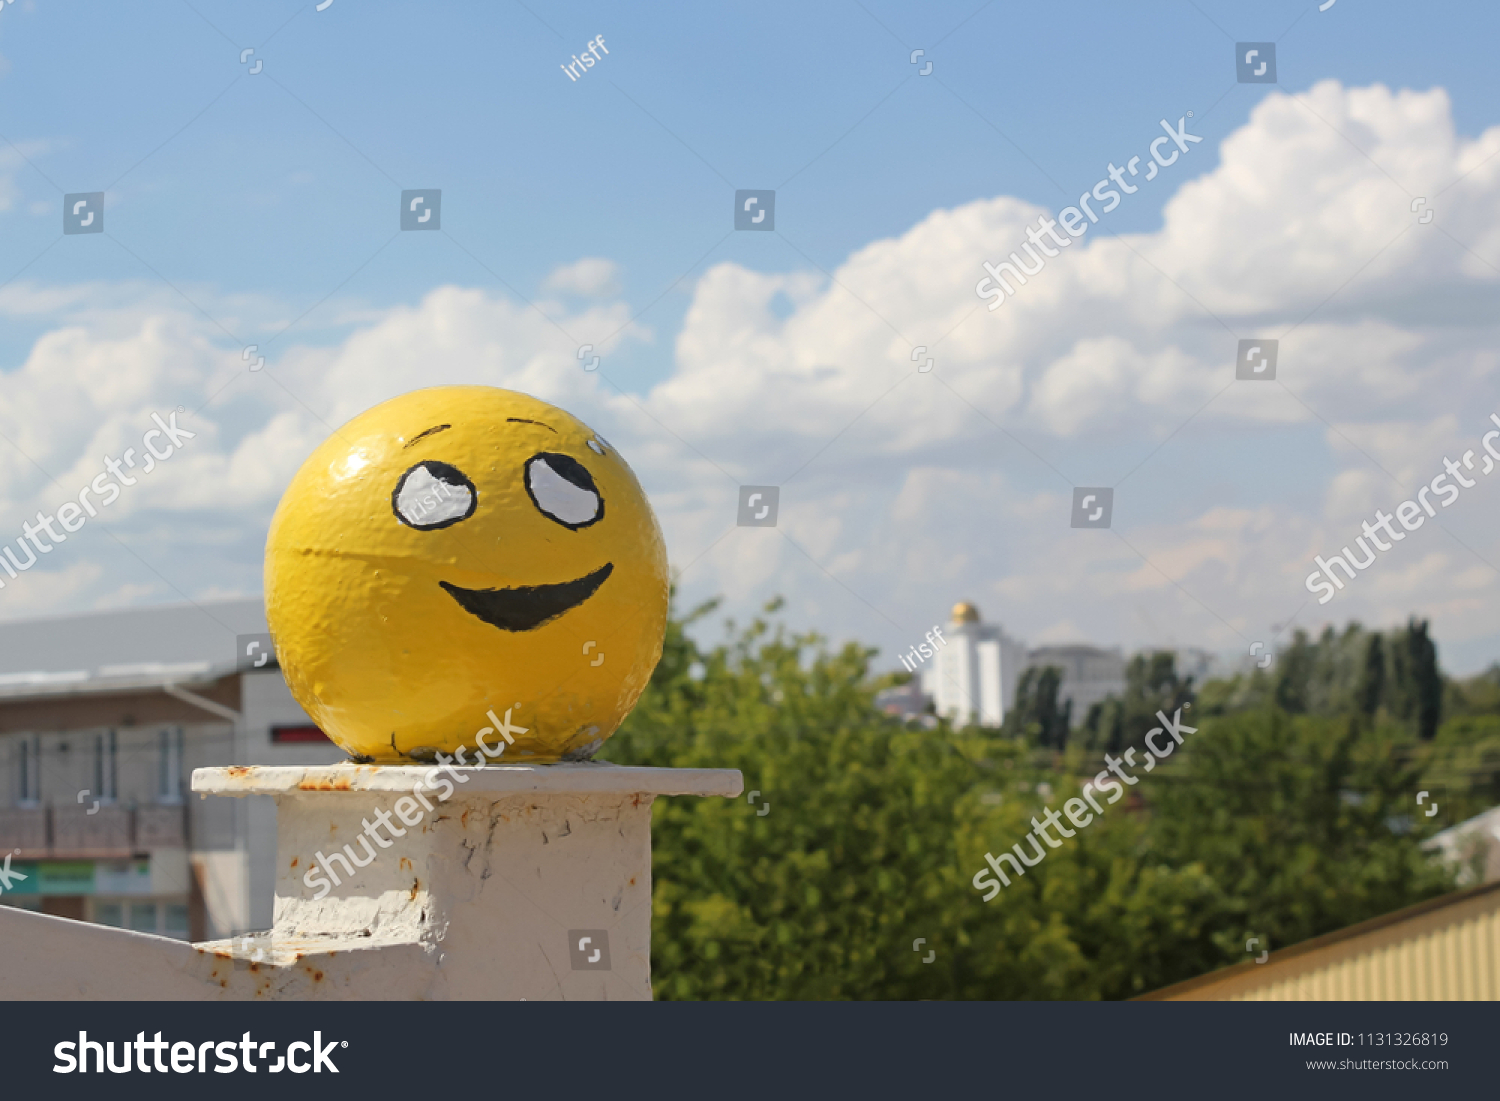 Yellow smiling face, the emotion of grin